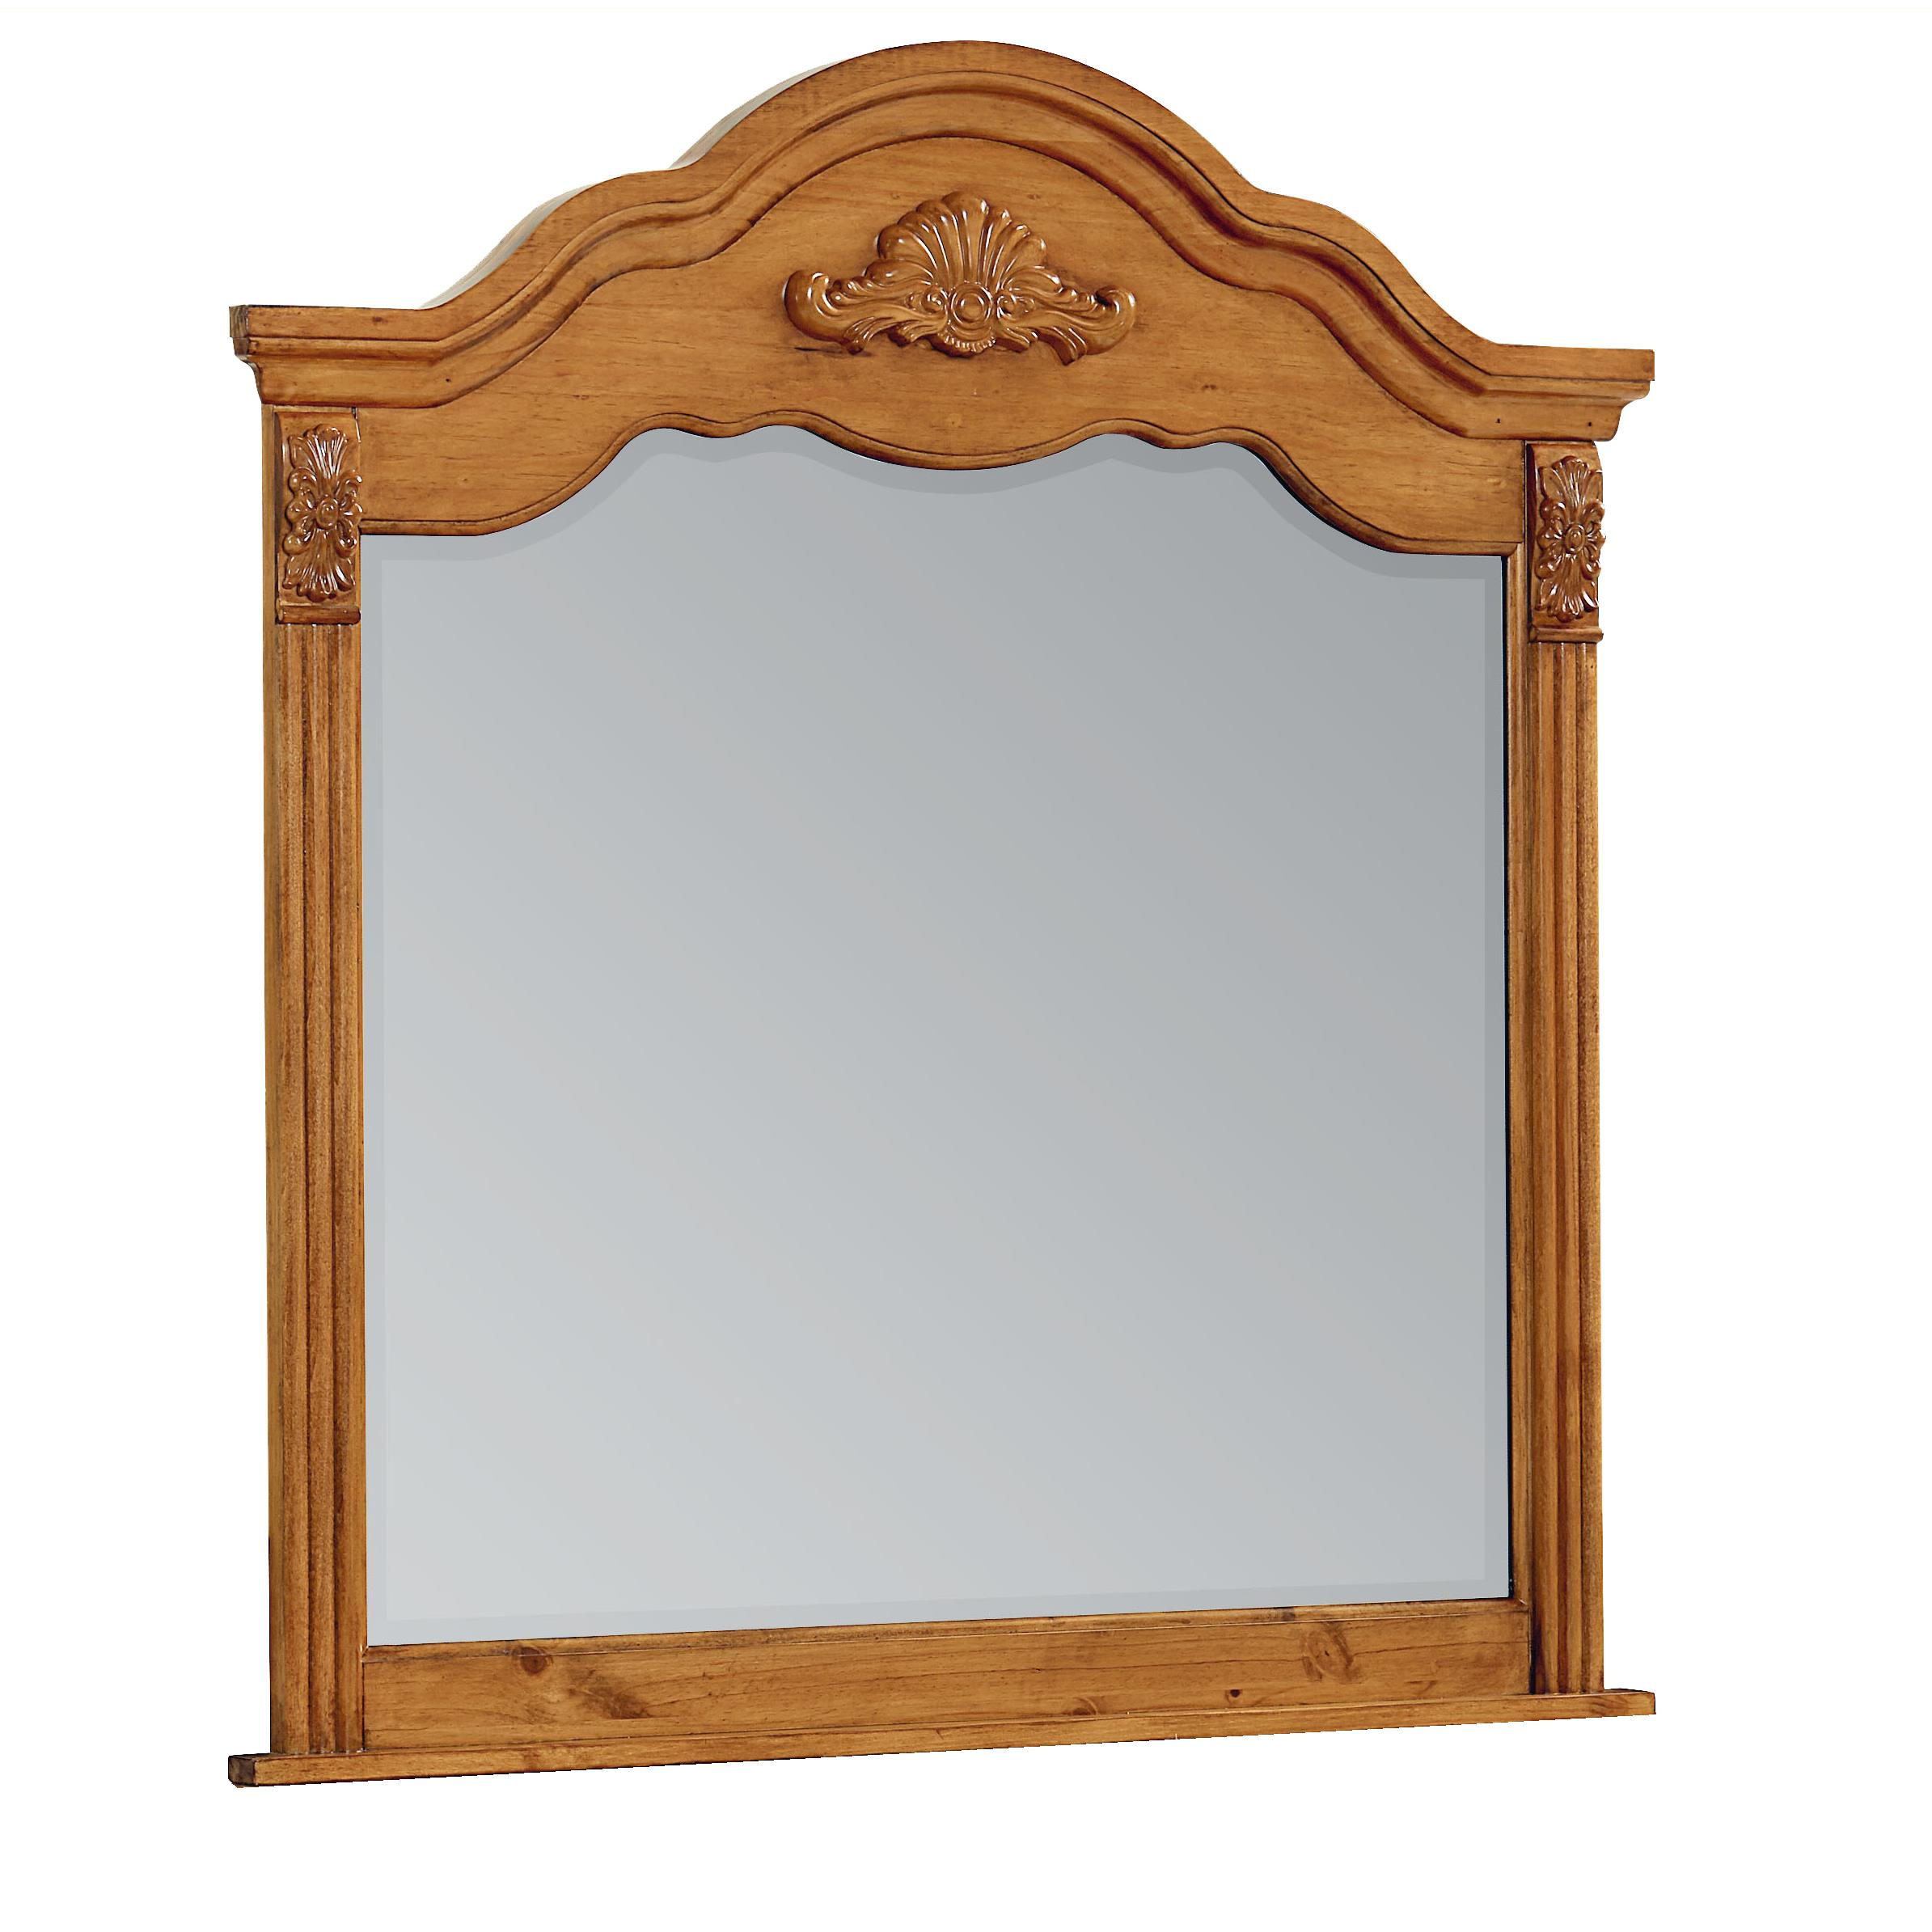 Standard Furniture Georgetown Traditional Mirror - Item Number: 83008